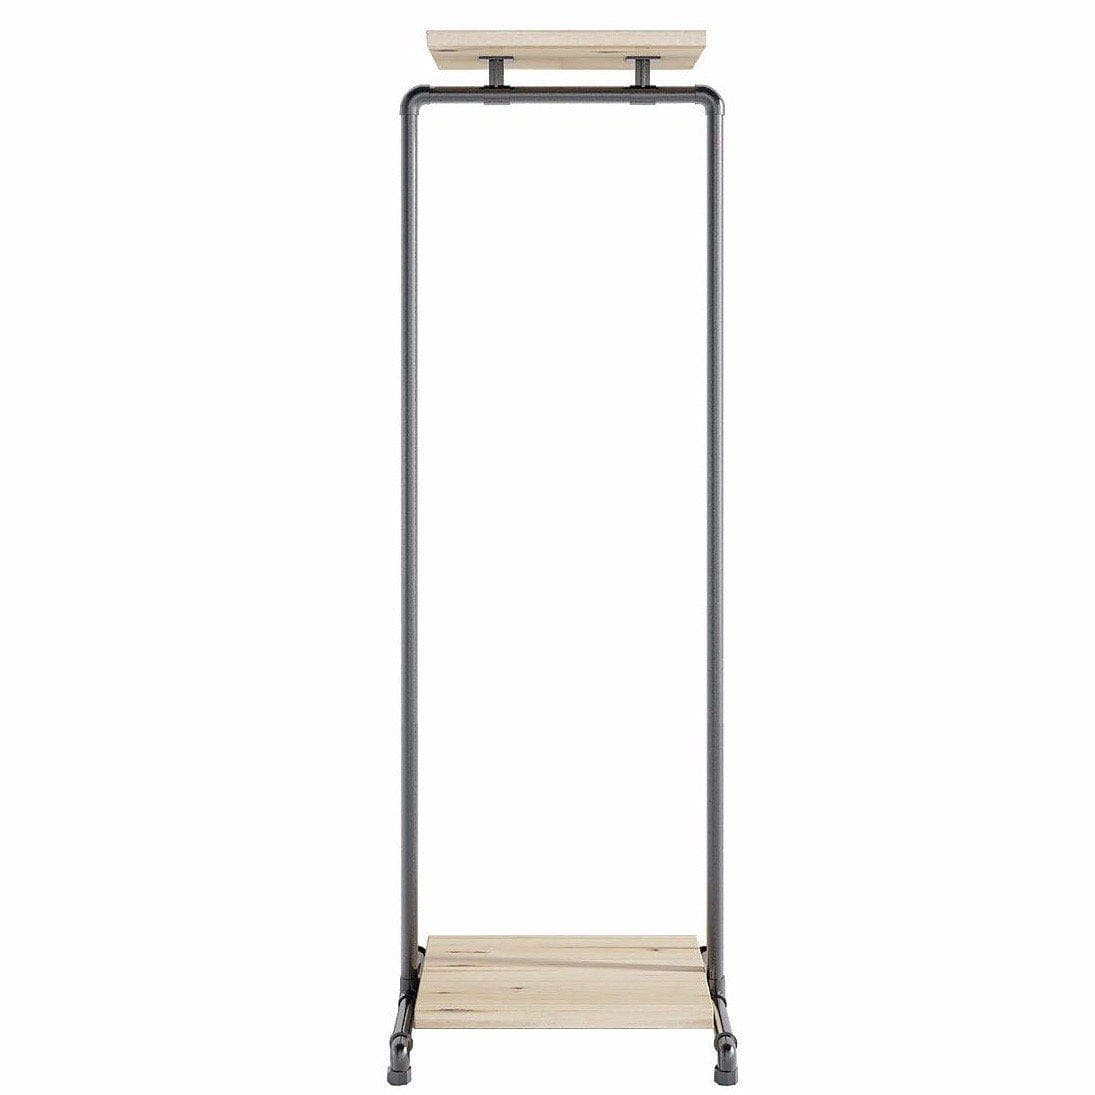 Ziito Clothes Rail C2 / 50 cm / Uden Wood Double Shelf Tøjstativ